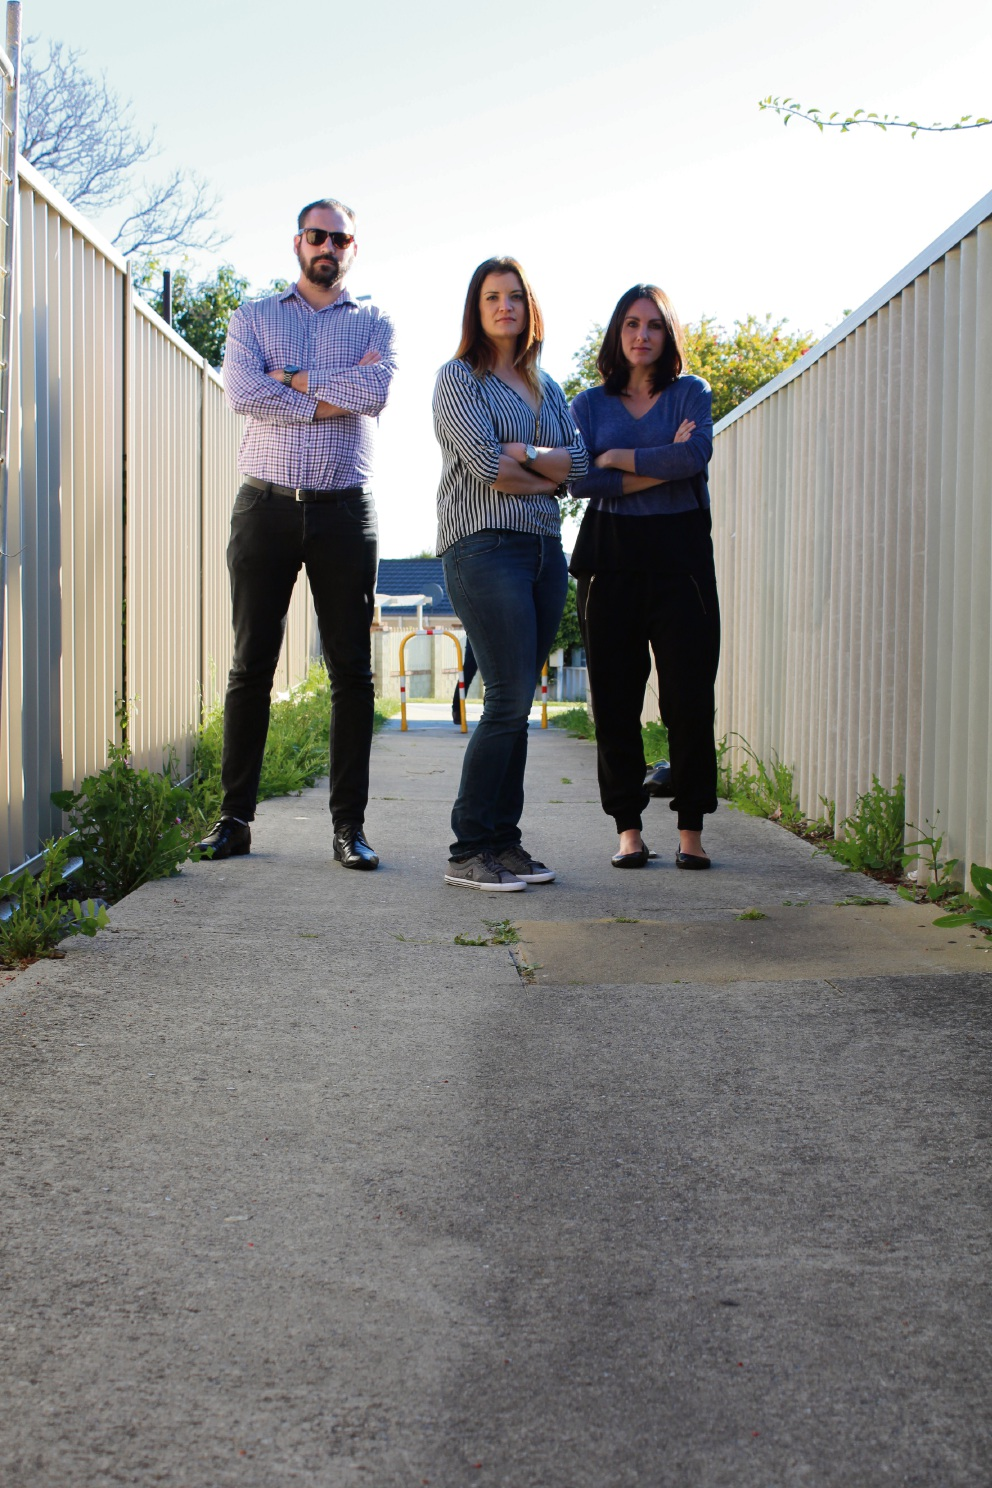 Piedmont Court residents Sam Smith, Telisha Rhodes and Belinda Stagoll are concerned about anti-social behaviour in a nearby laneway. Picture: Kate Leaver